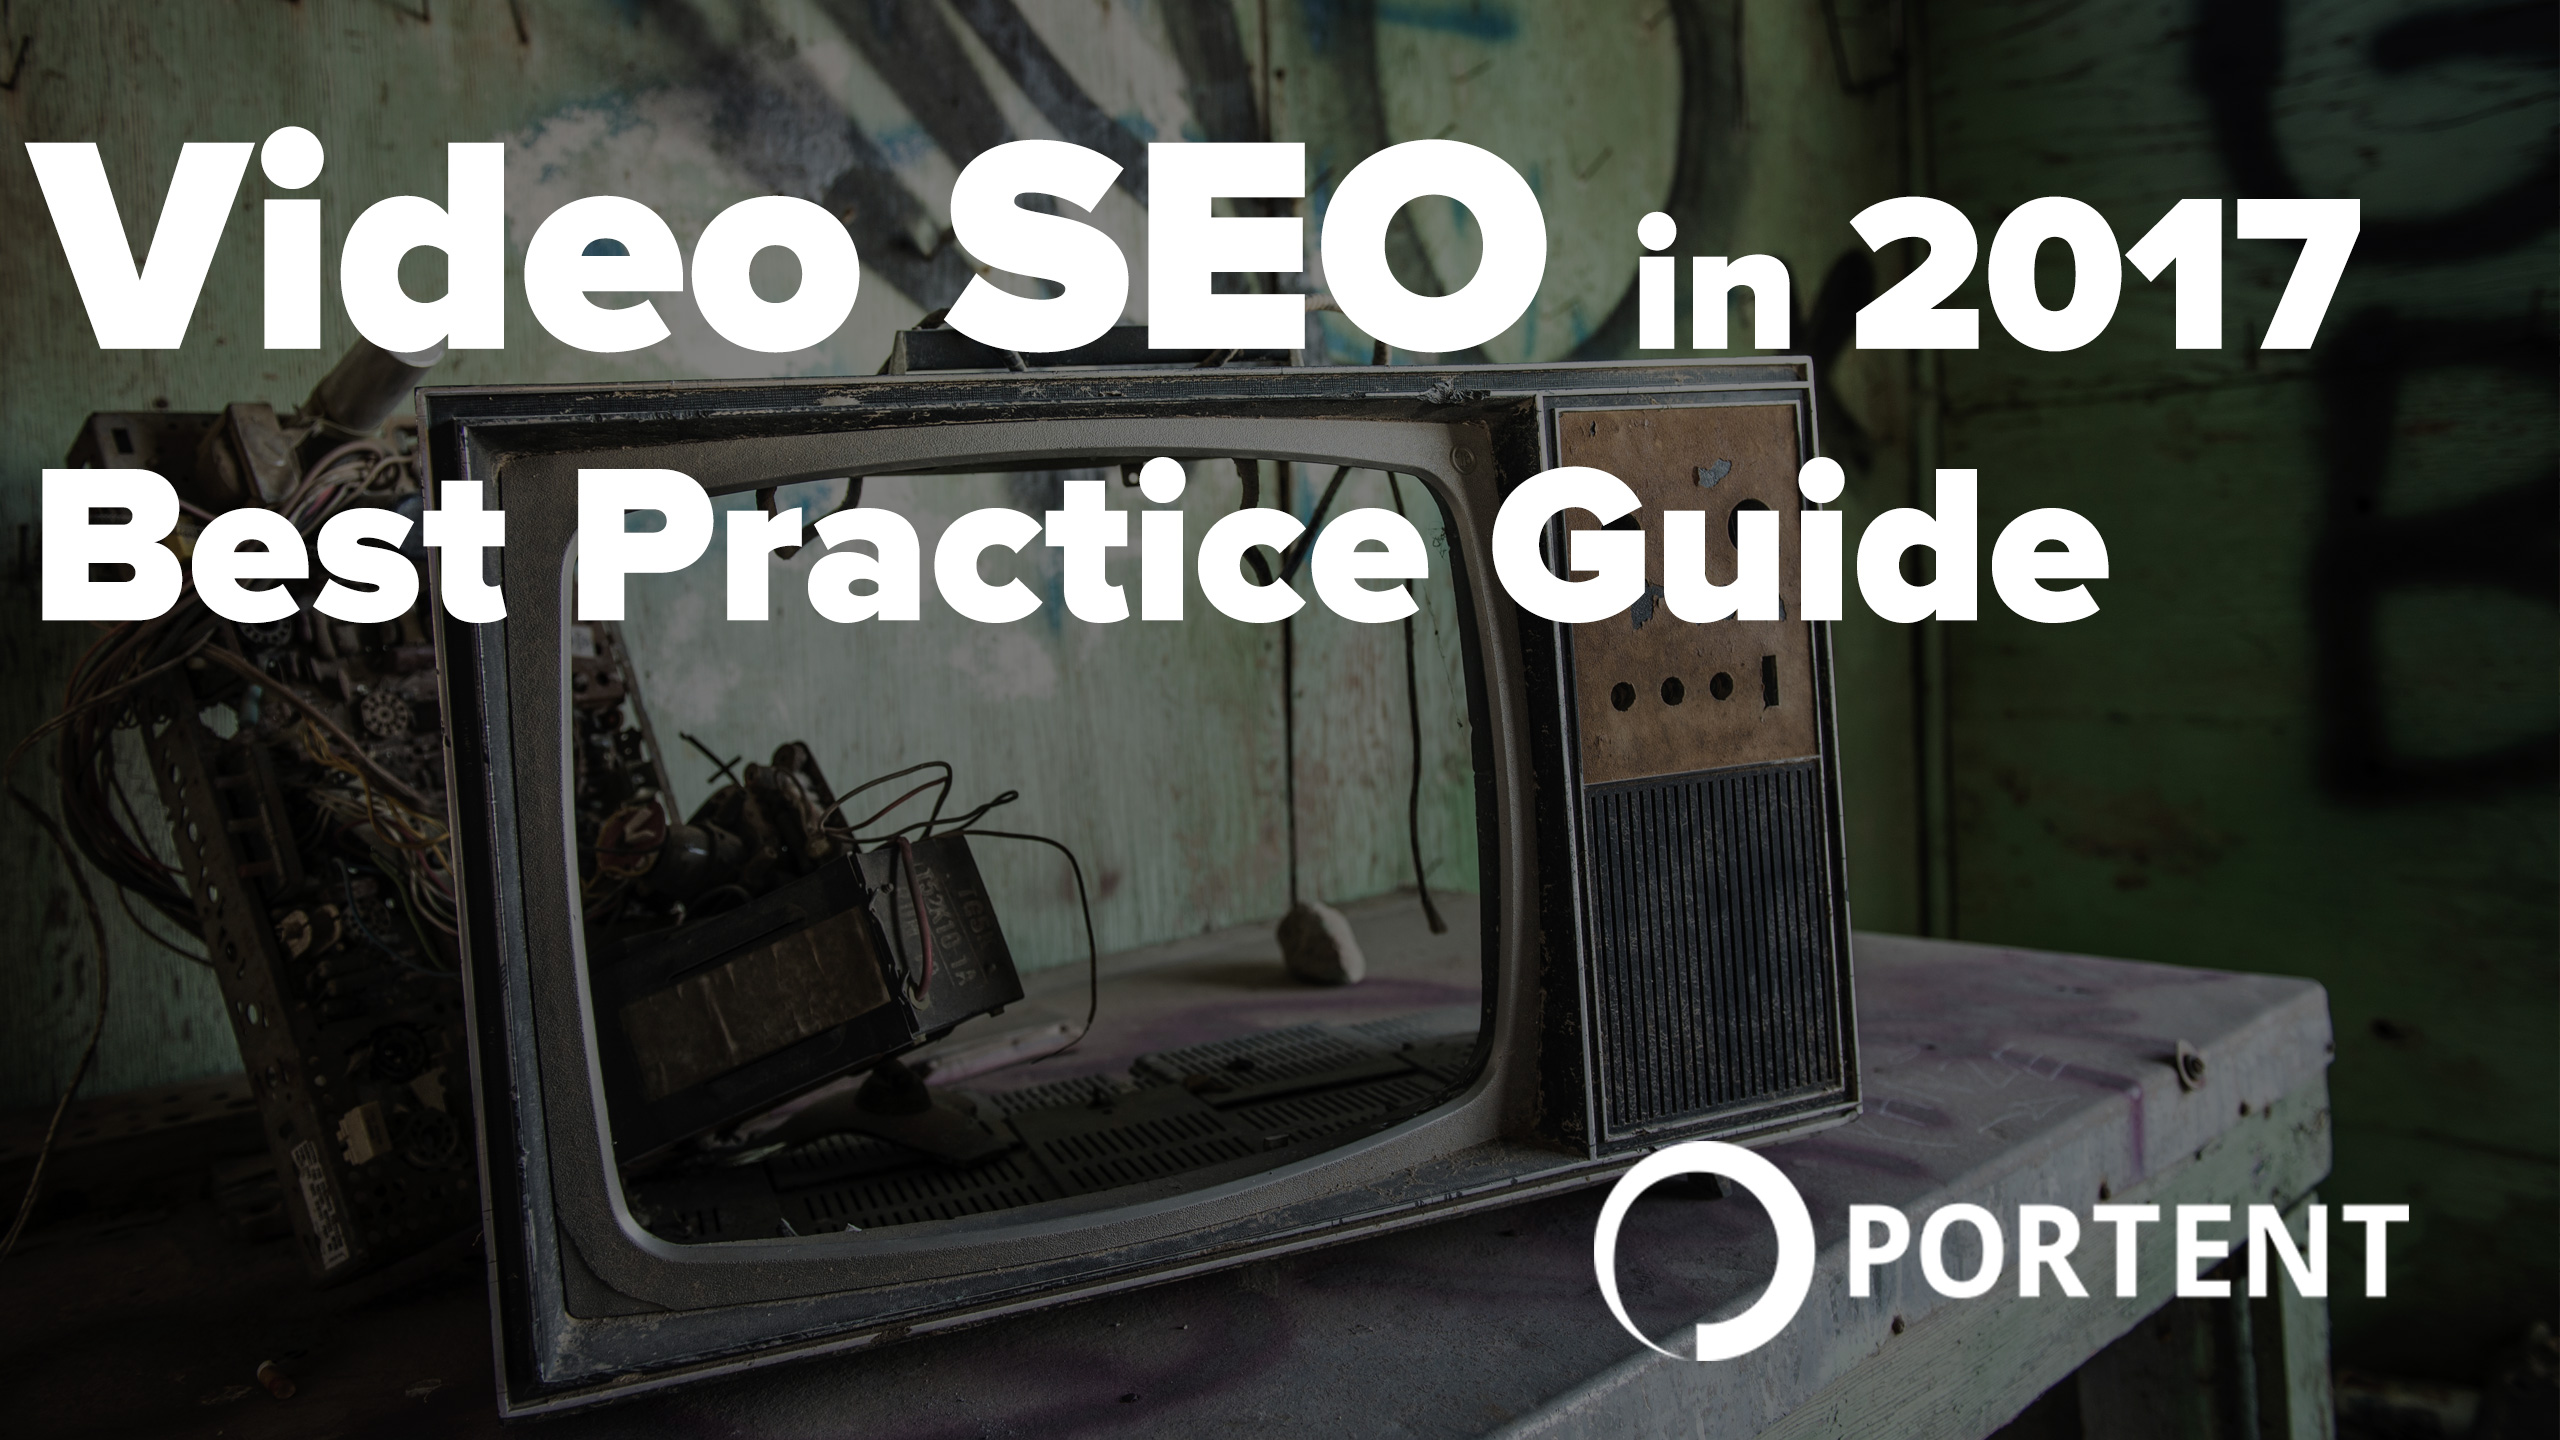 Video seo in 2017 best practice guide portent for Portent serp